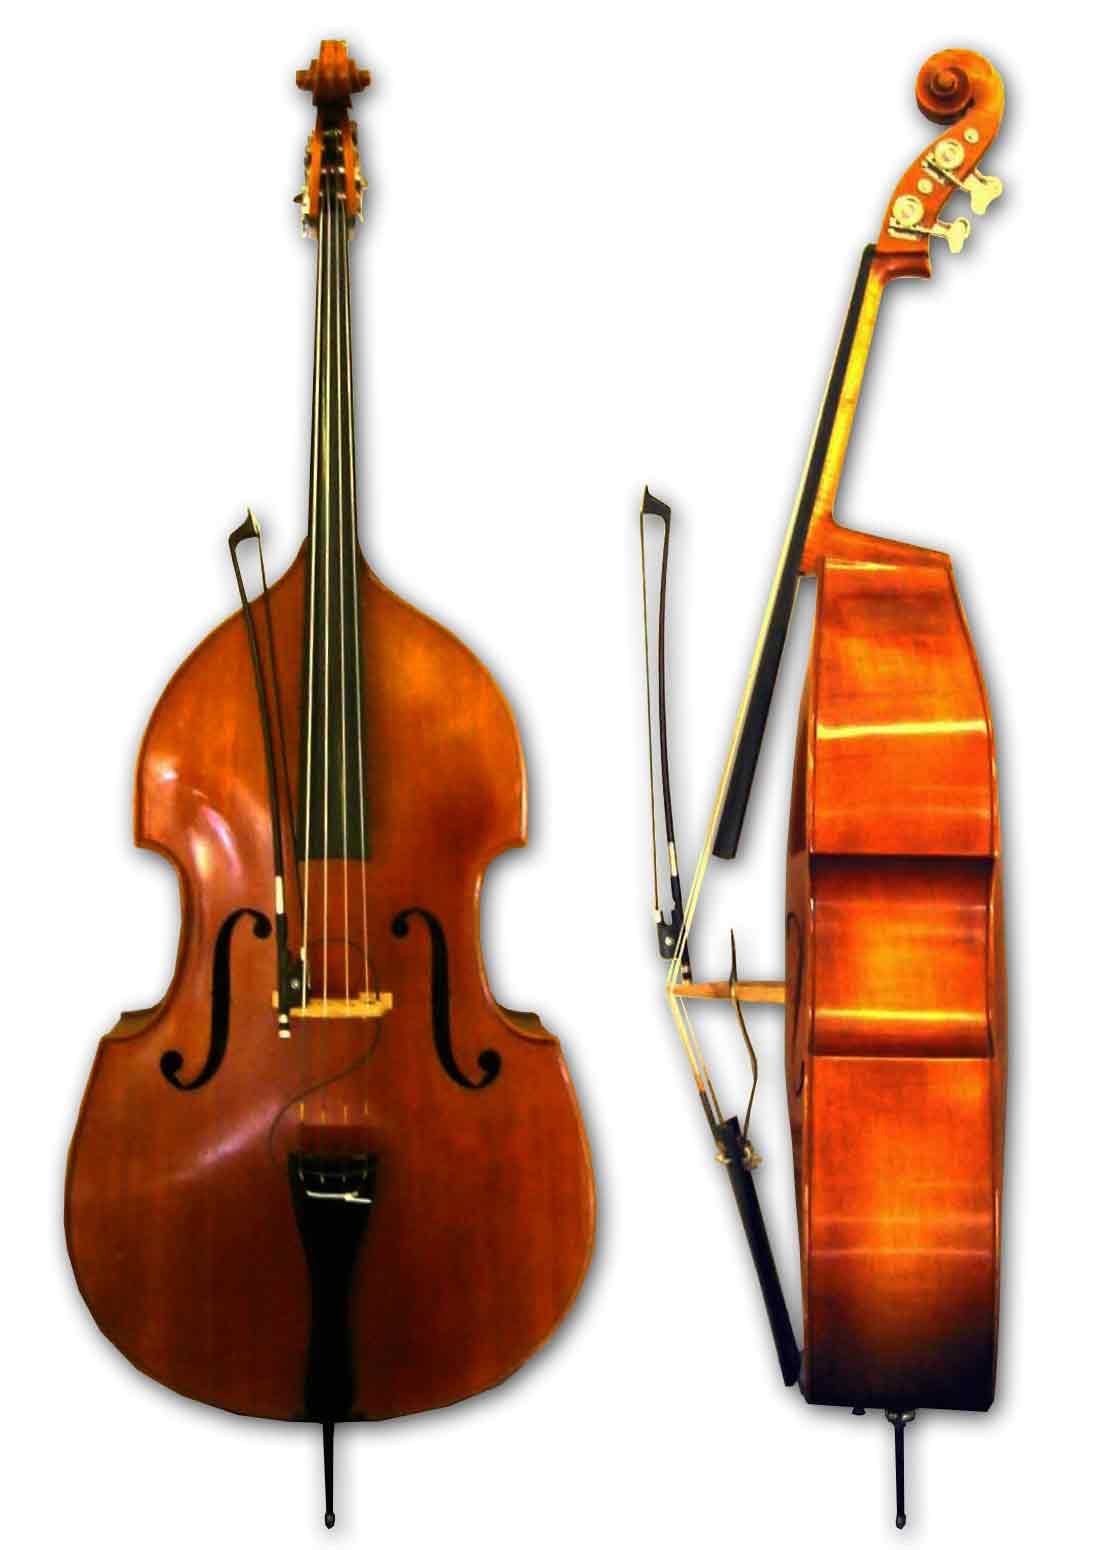 Double Bass Strings Notes : double, strings, notes, Double, Wikipedia